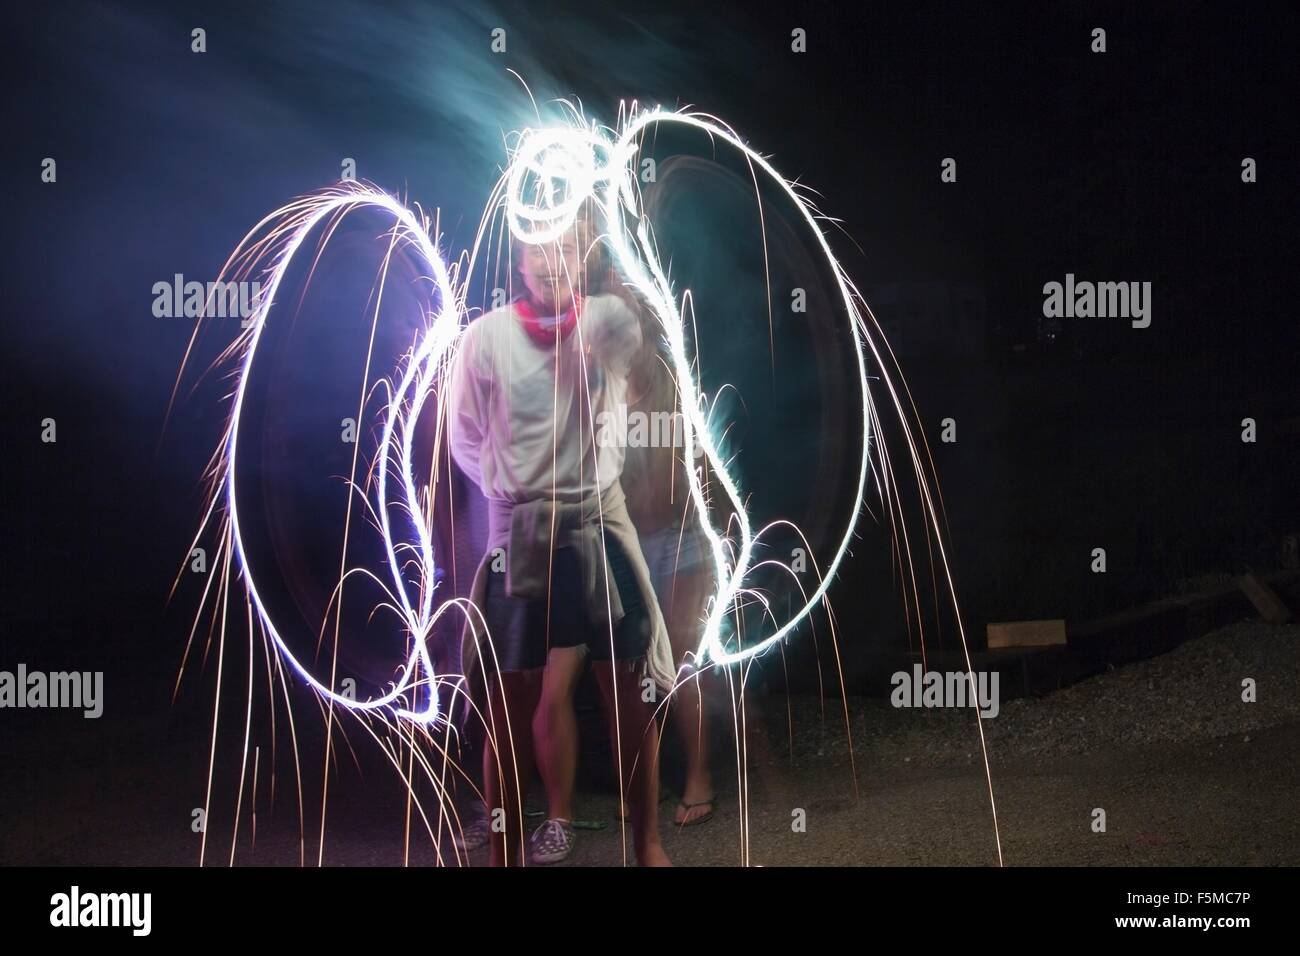 Two adult friends making sparkler angel wings in darkness on Independence Day, USA - Stock Image